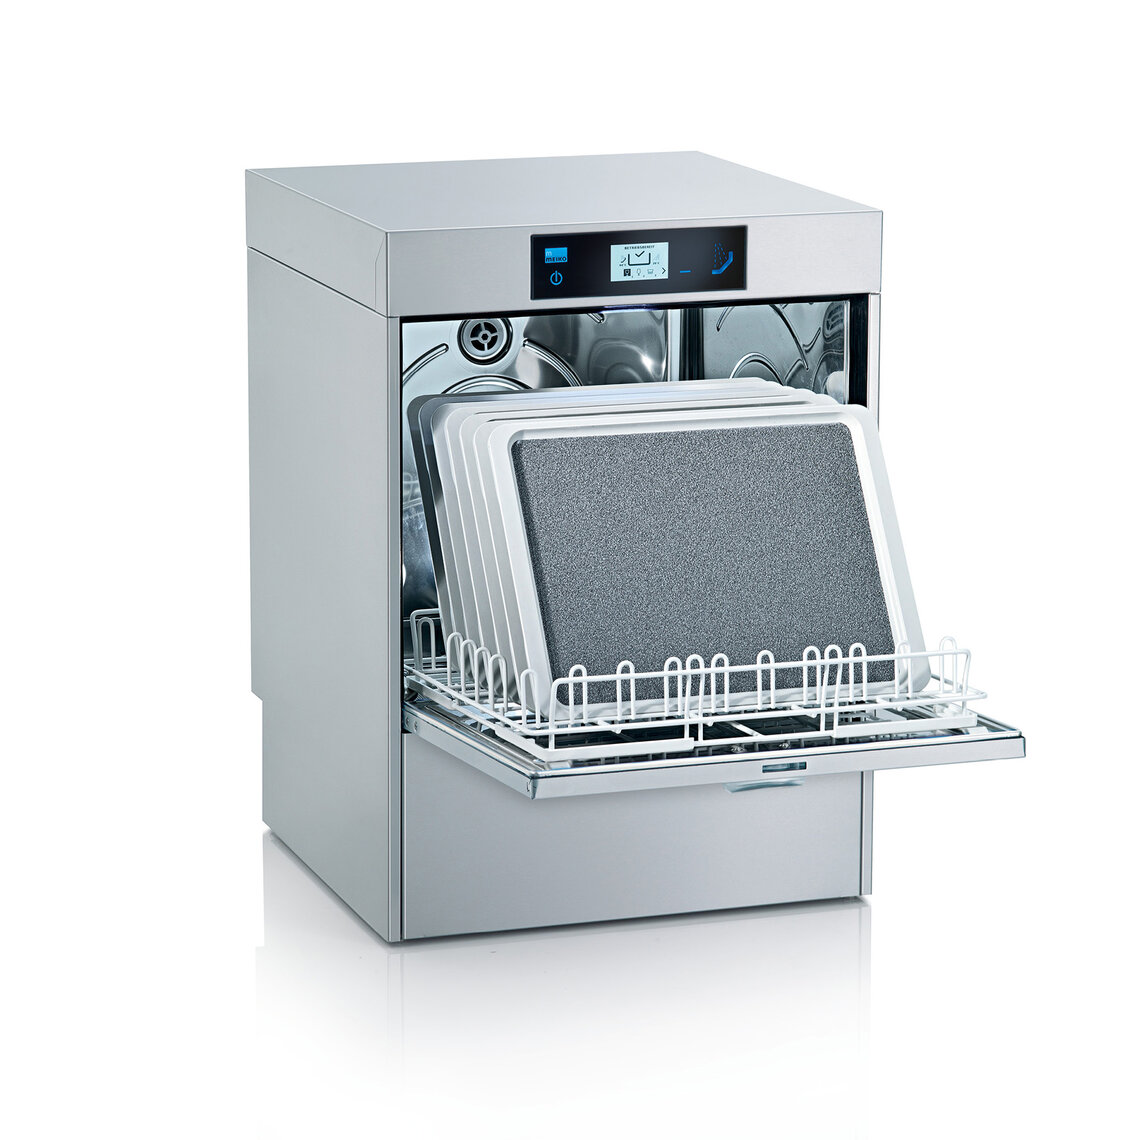 Small commercial dishwasher - Technical data - MEIKO